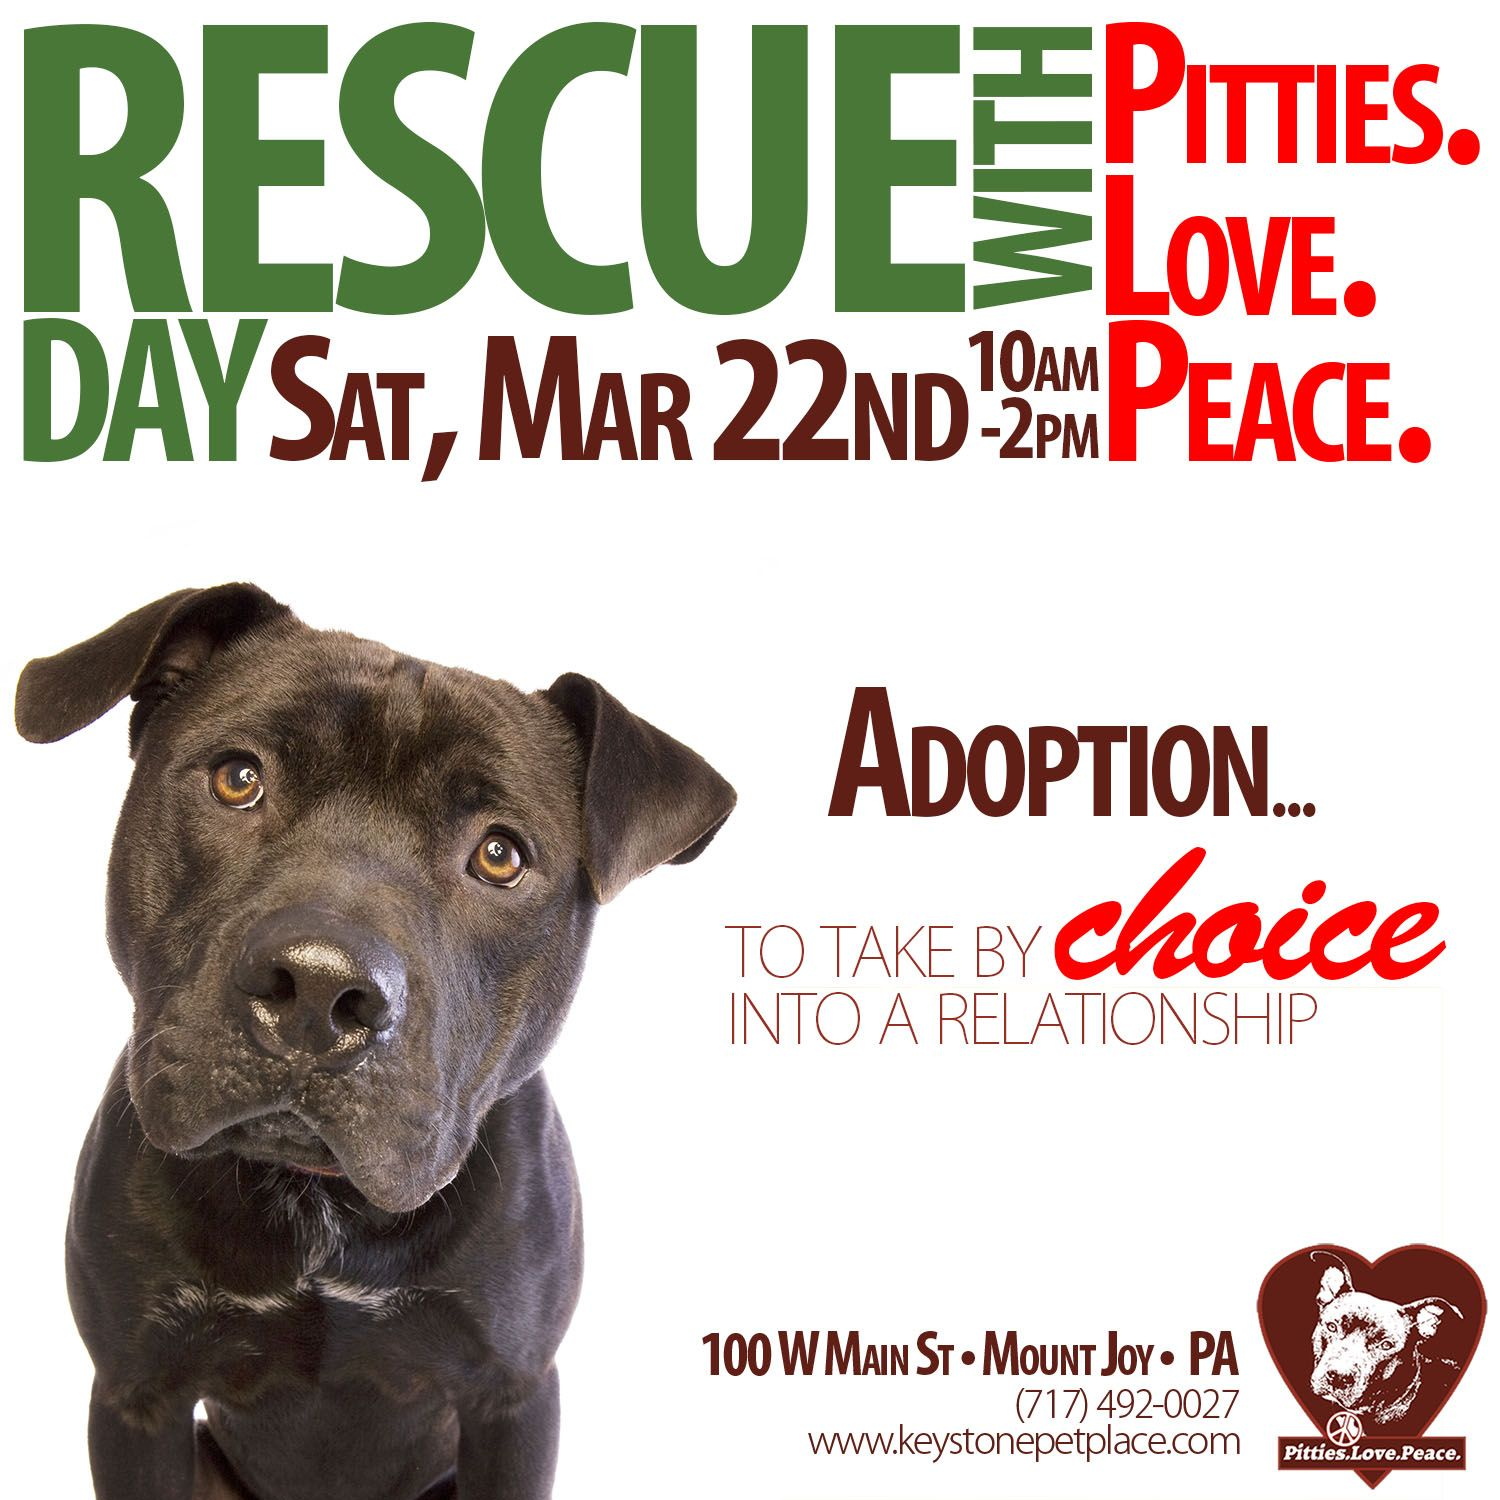 Pitties Love Peace A Local Pitbull Rescue Organization Is Coming To Keystone Pet Place Here In Mount Joy Pa On Saturday March 2 Mount Joy Special Events Adoption